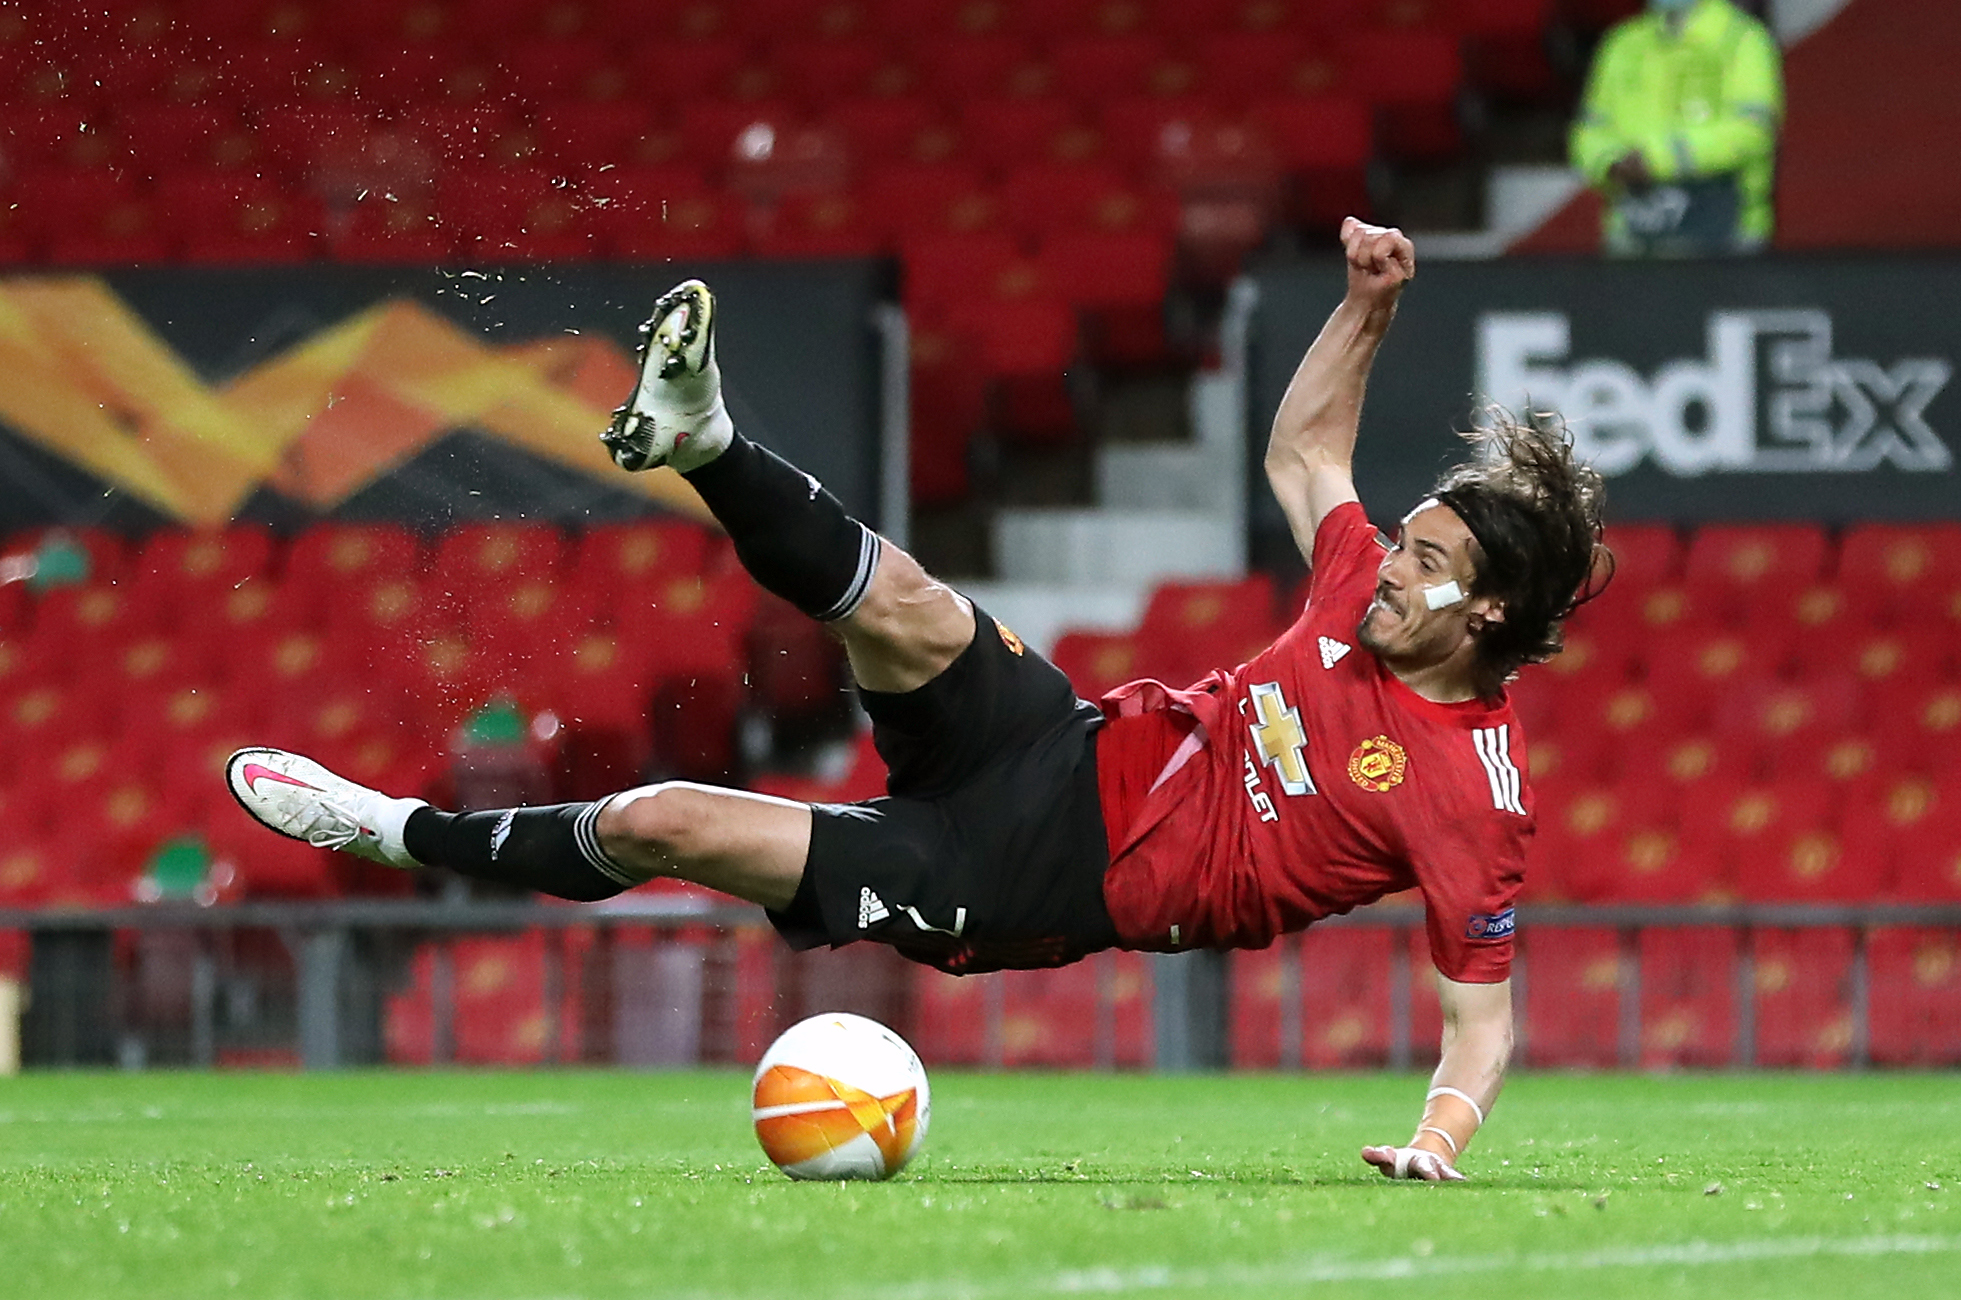 <p>Manchester United's Edinson Cavani trips and falls during the UEFA Europa League Semi Final First Leg match at Old Trafford, Manchester. Picture date: Thursday April 29, 2021.</p>